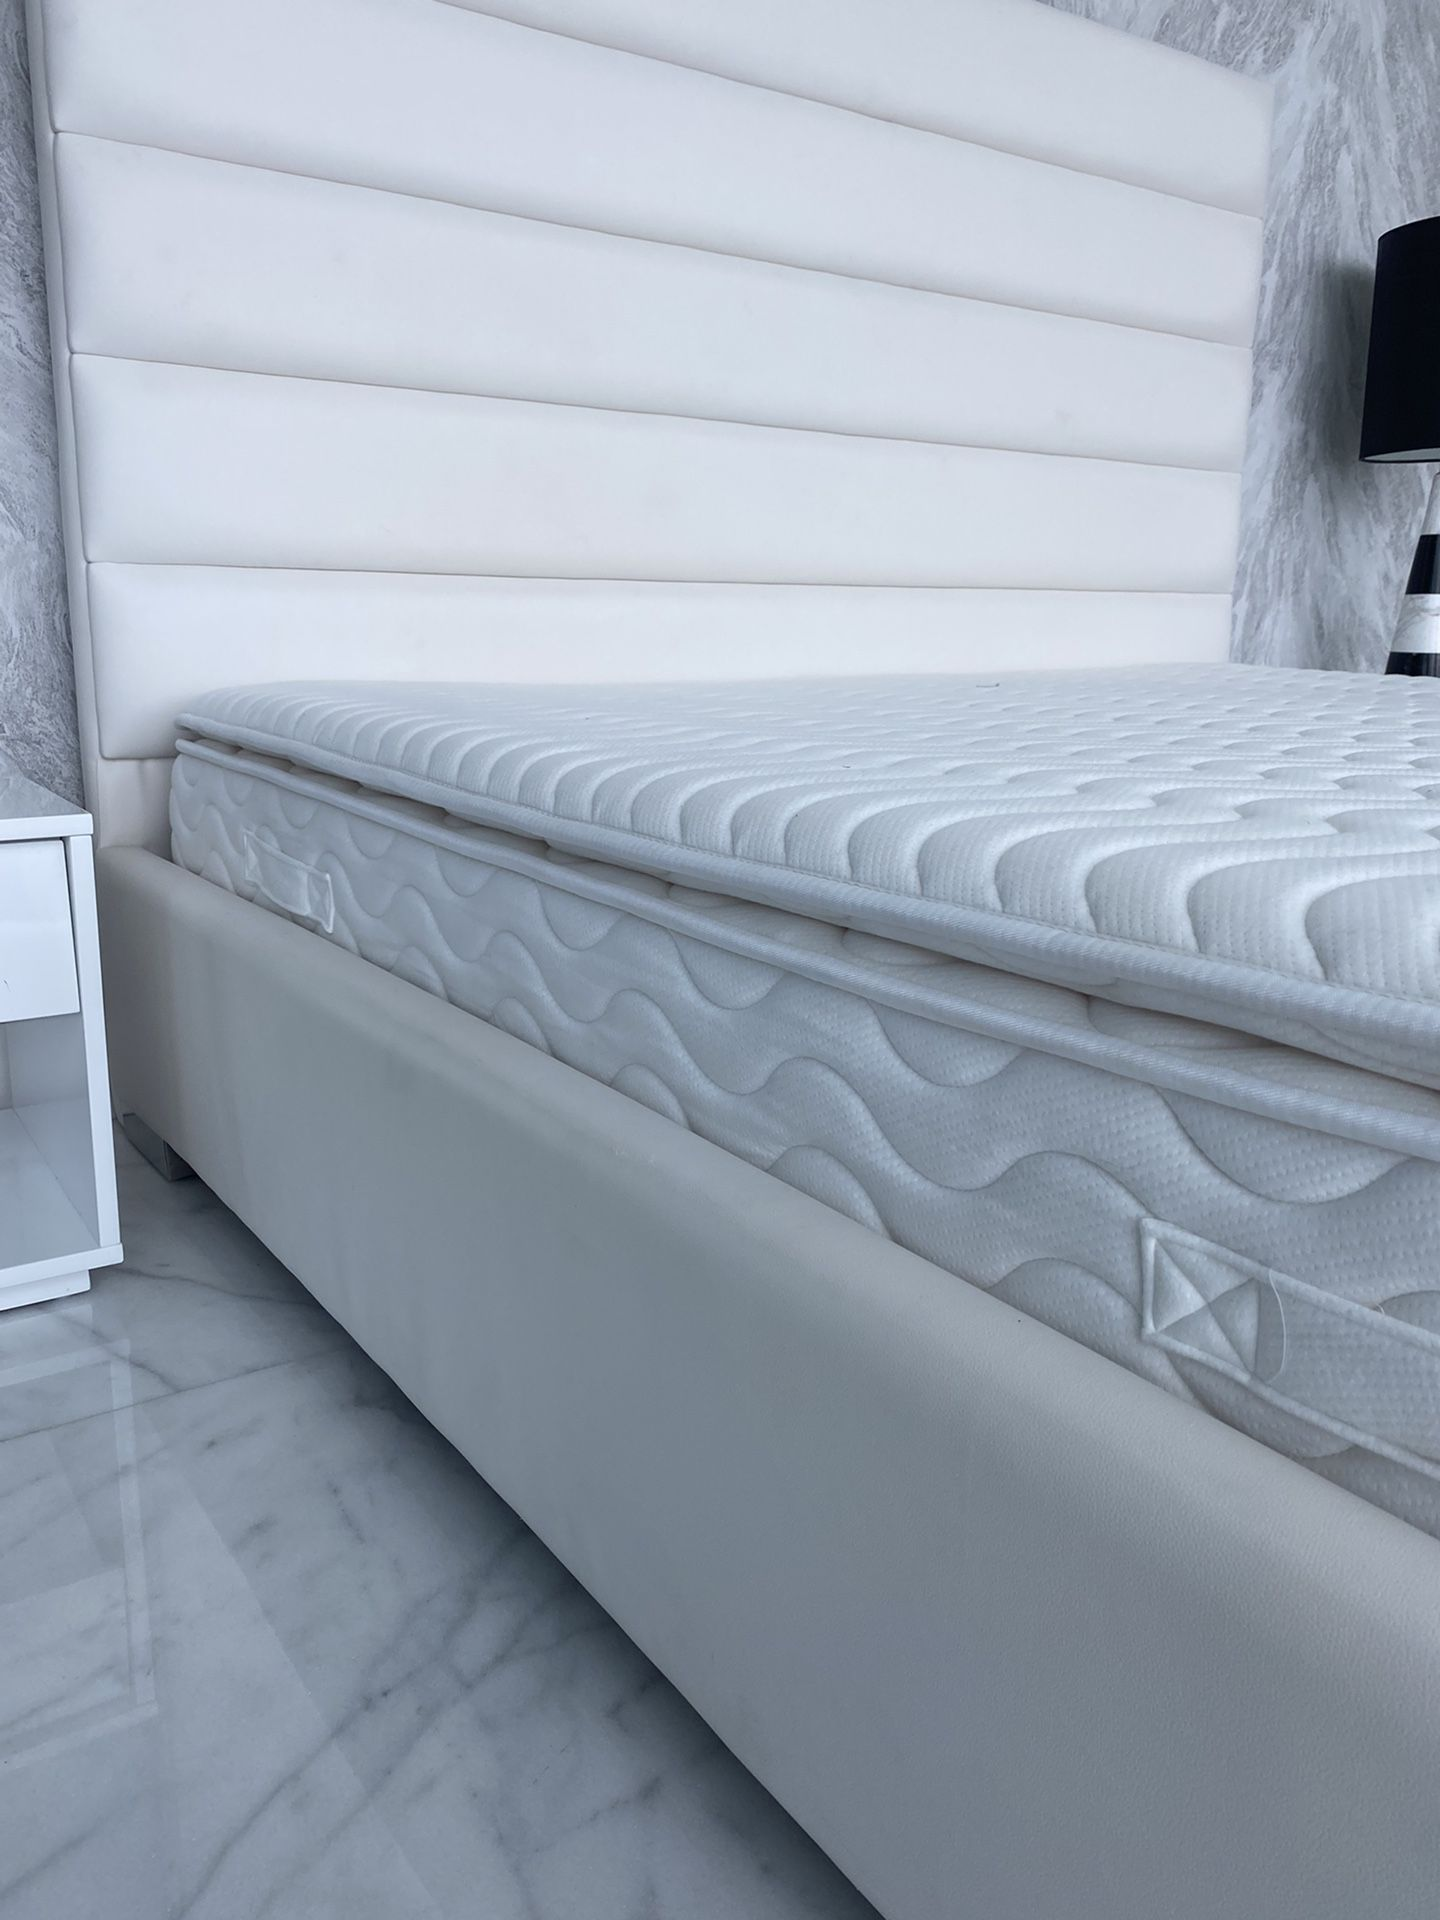 King Bed Frame AND/OR mattress